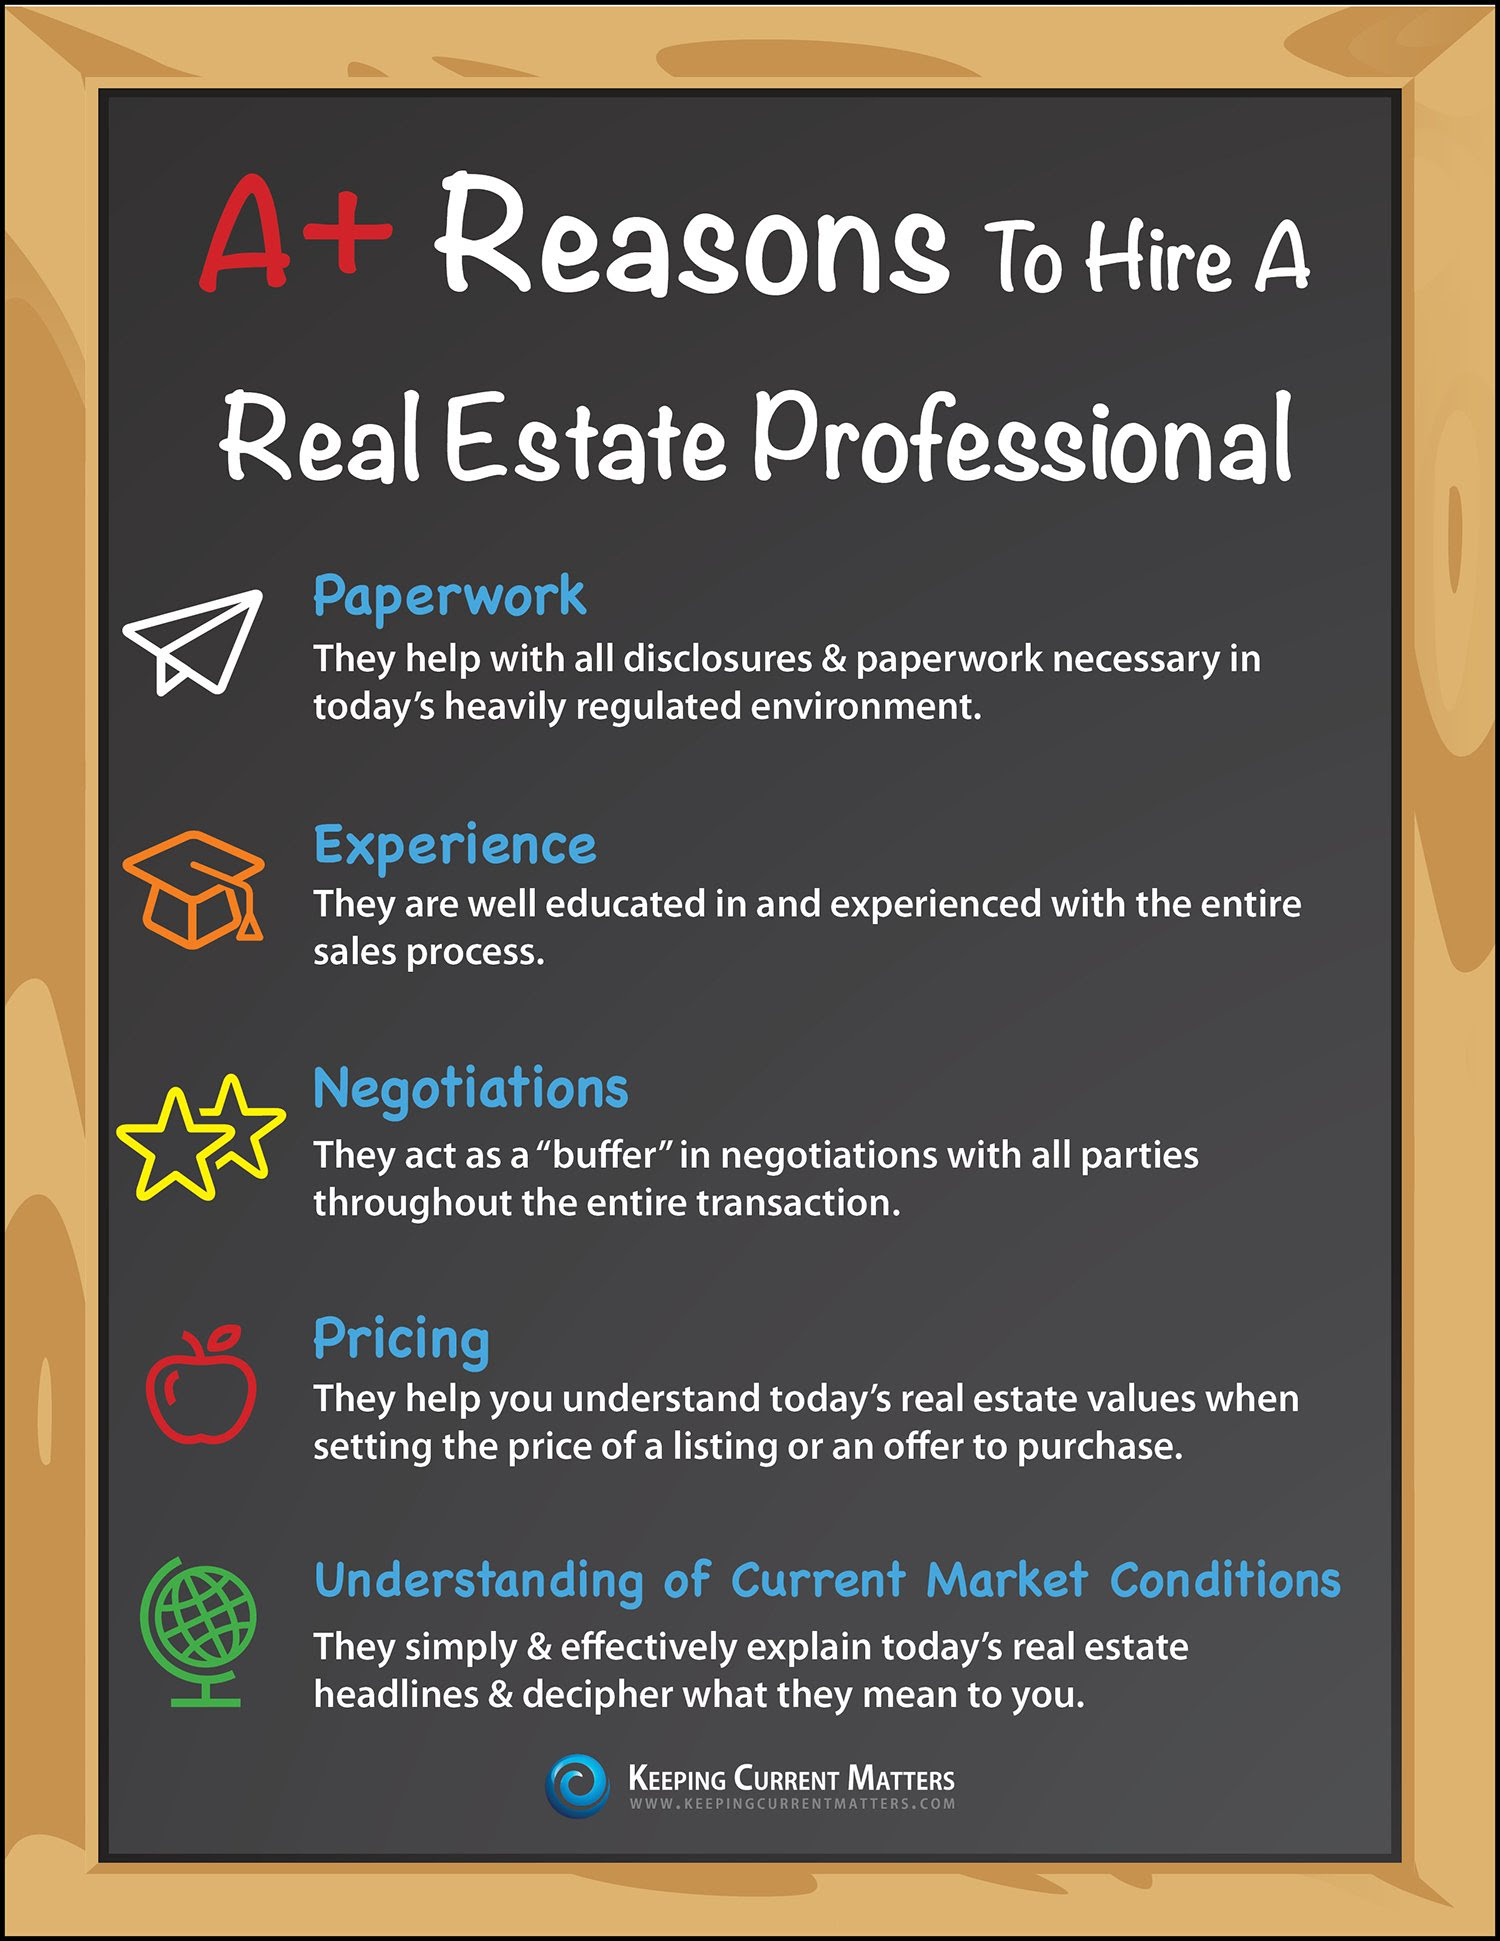 Want to Get an A? Hire A Real Estate Pro [INFOGRAPHIC] | Keeping Current Matters